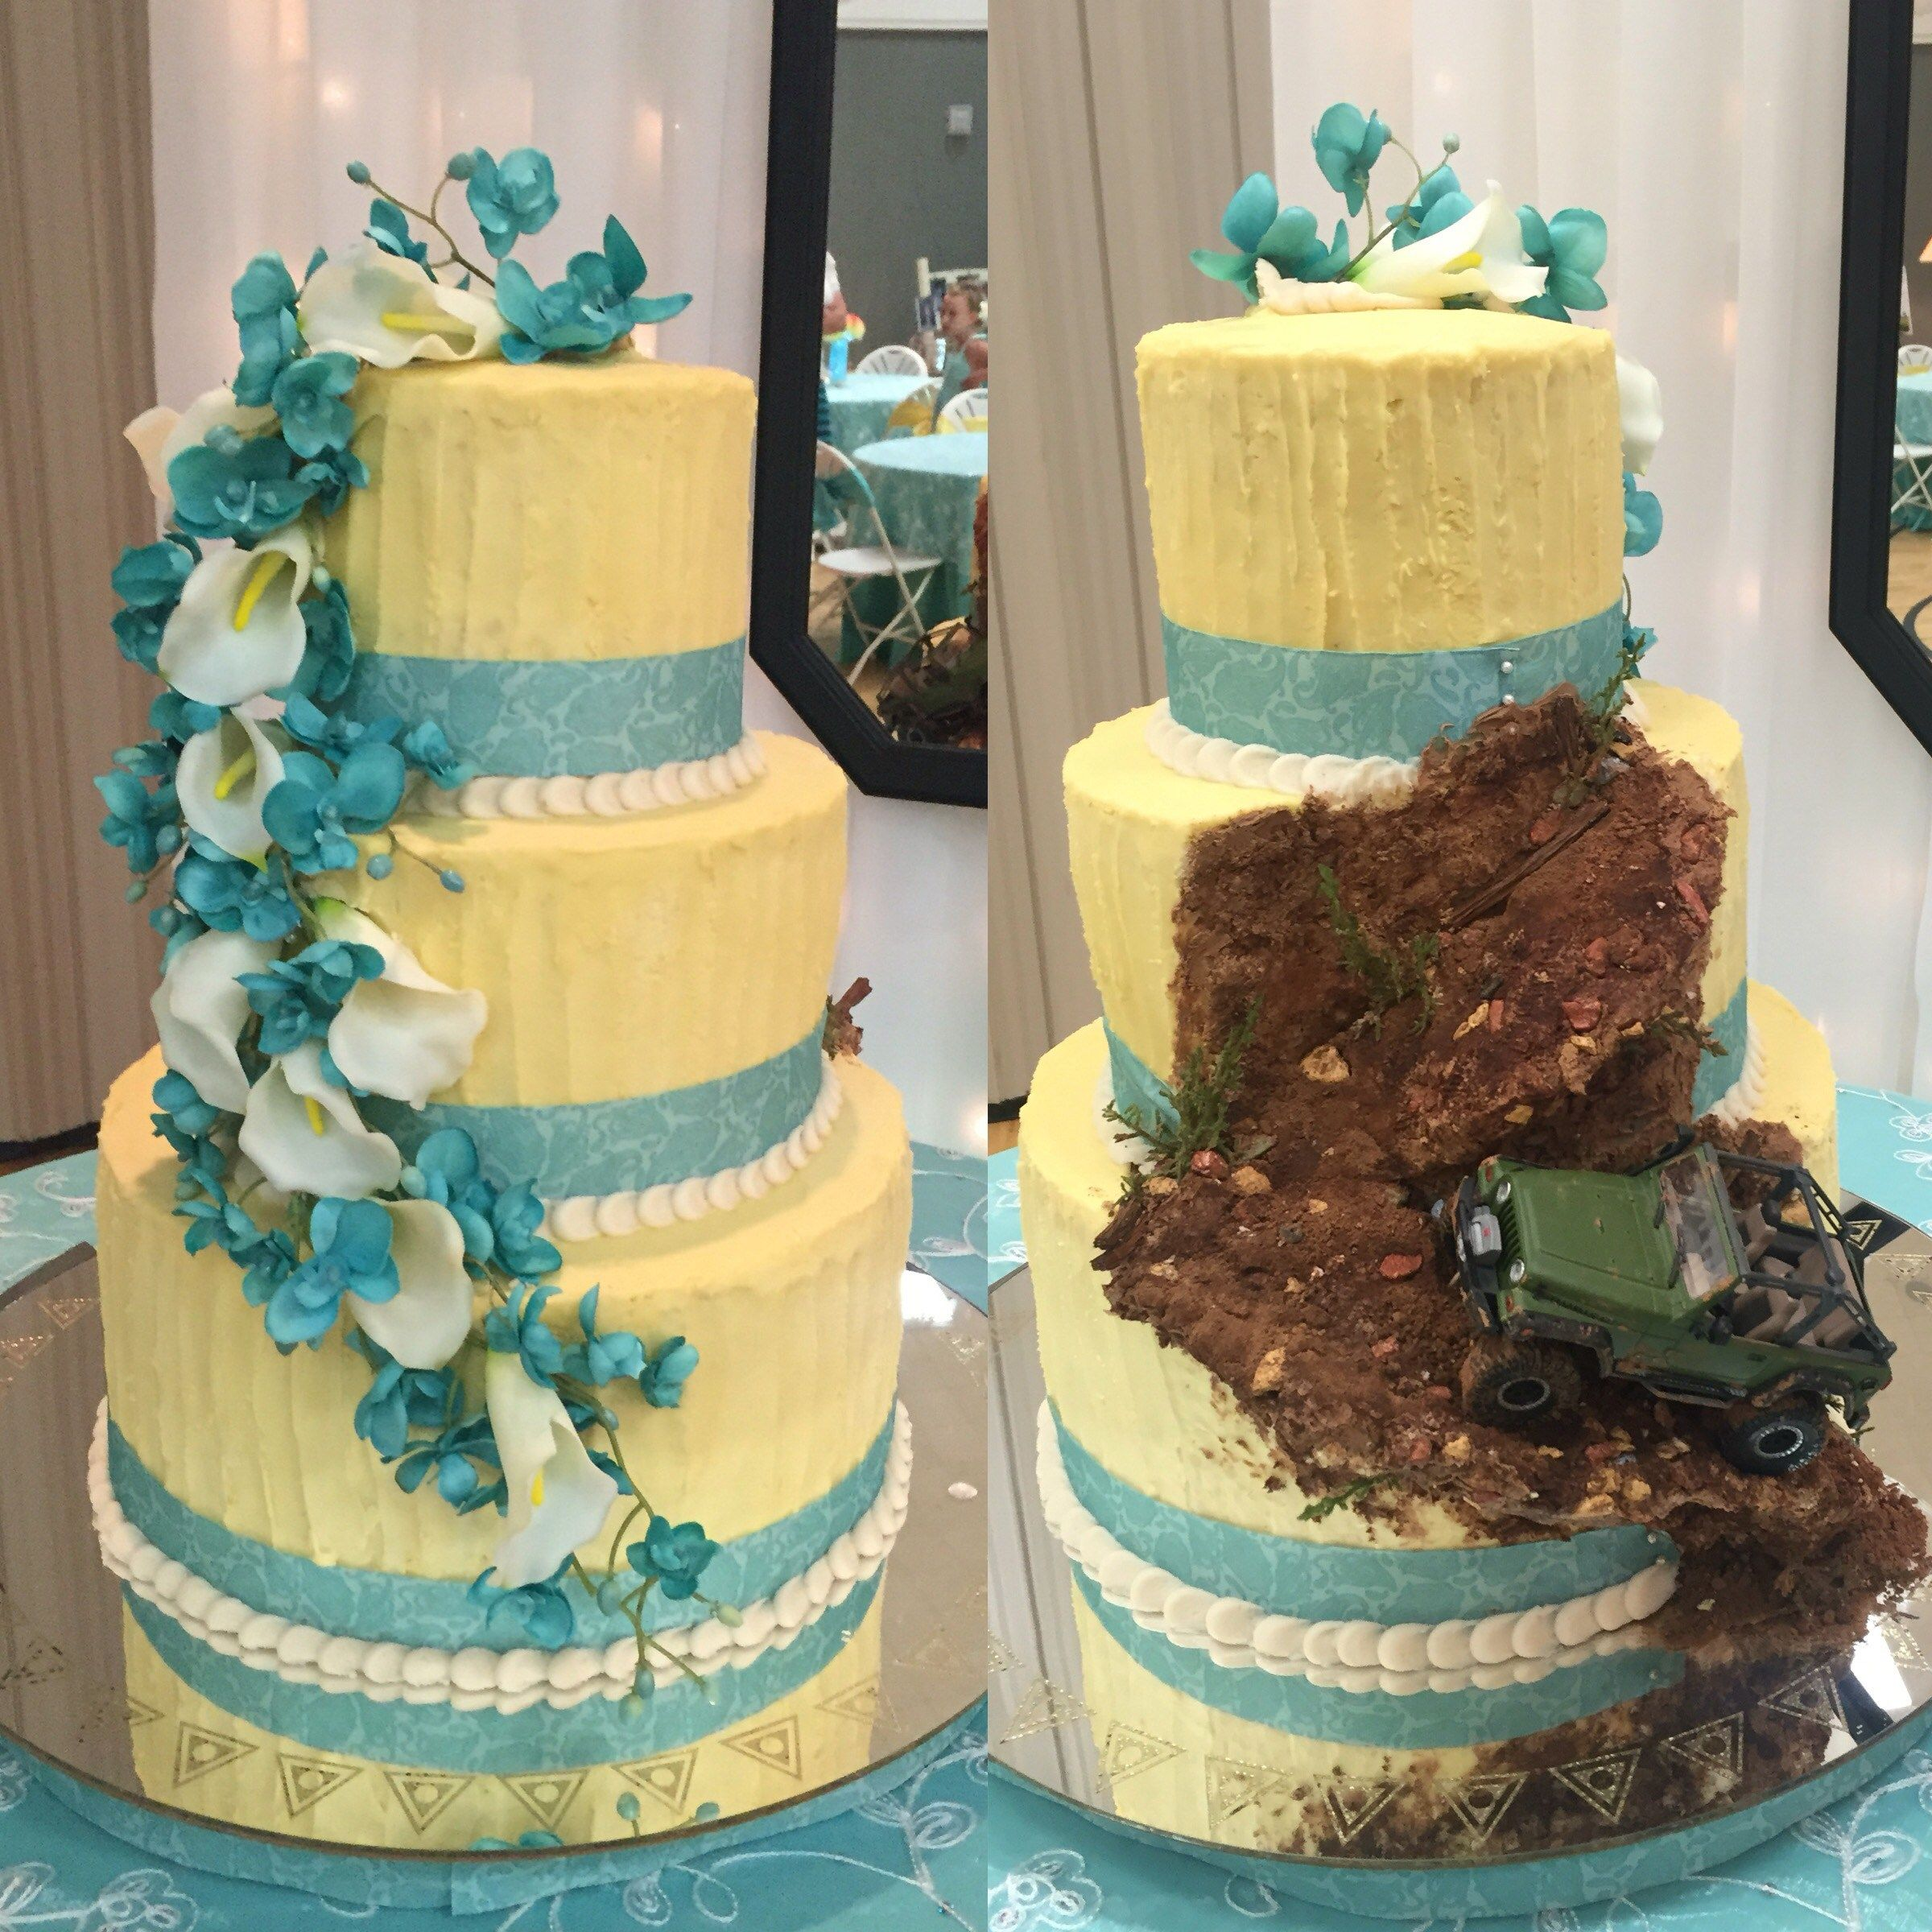 Double sided wedding cake for him and her. Combining two wedding ...